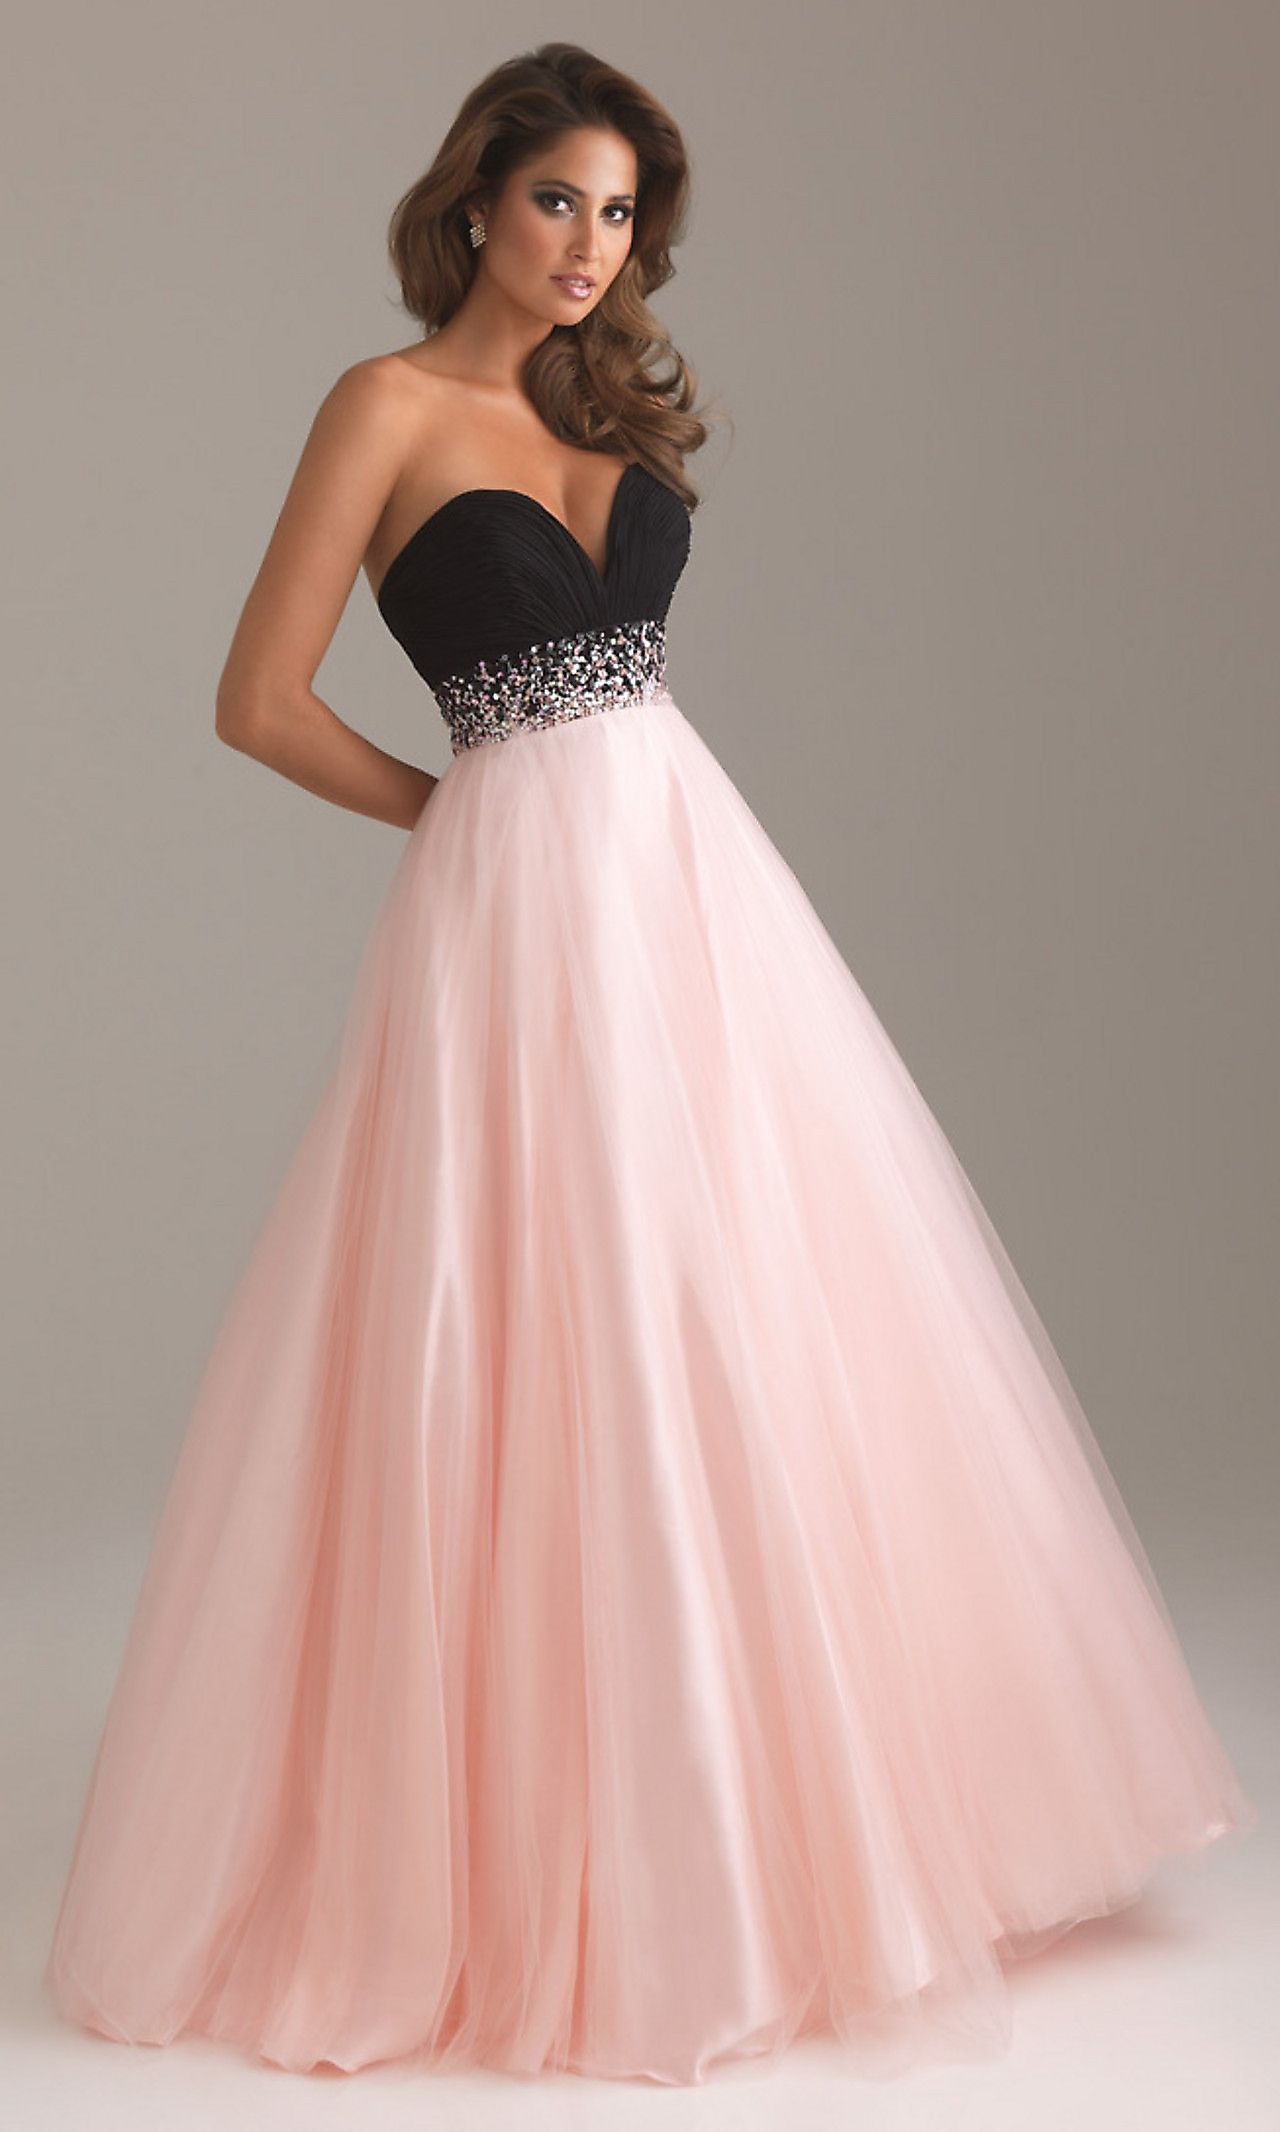 wish i had a reason to buy this | Dresses | Pinterest | Ropa y ...